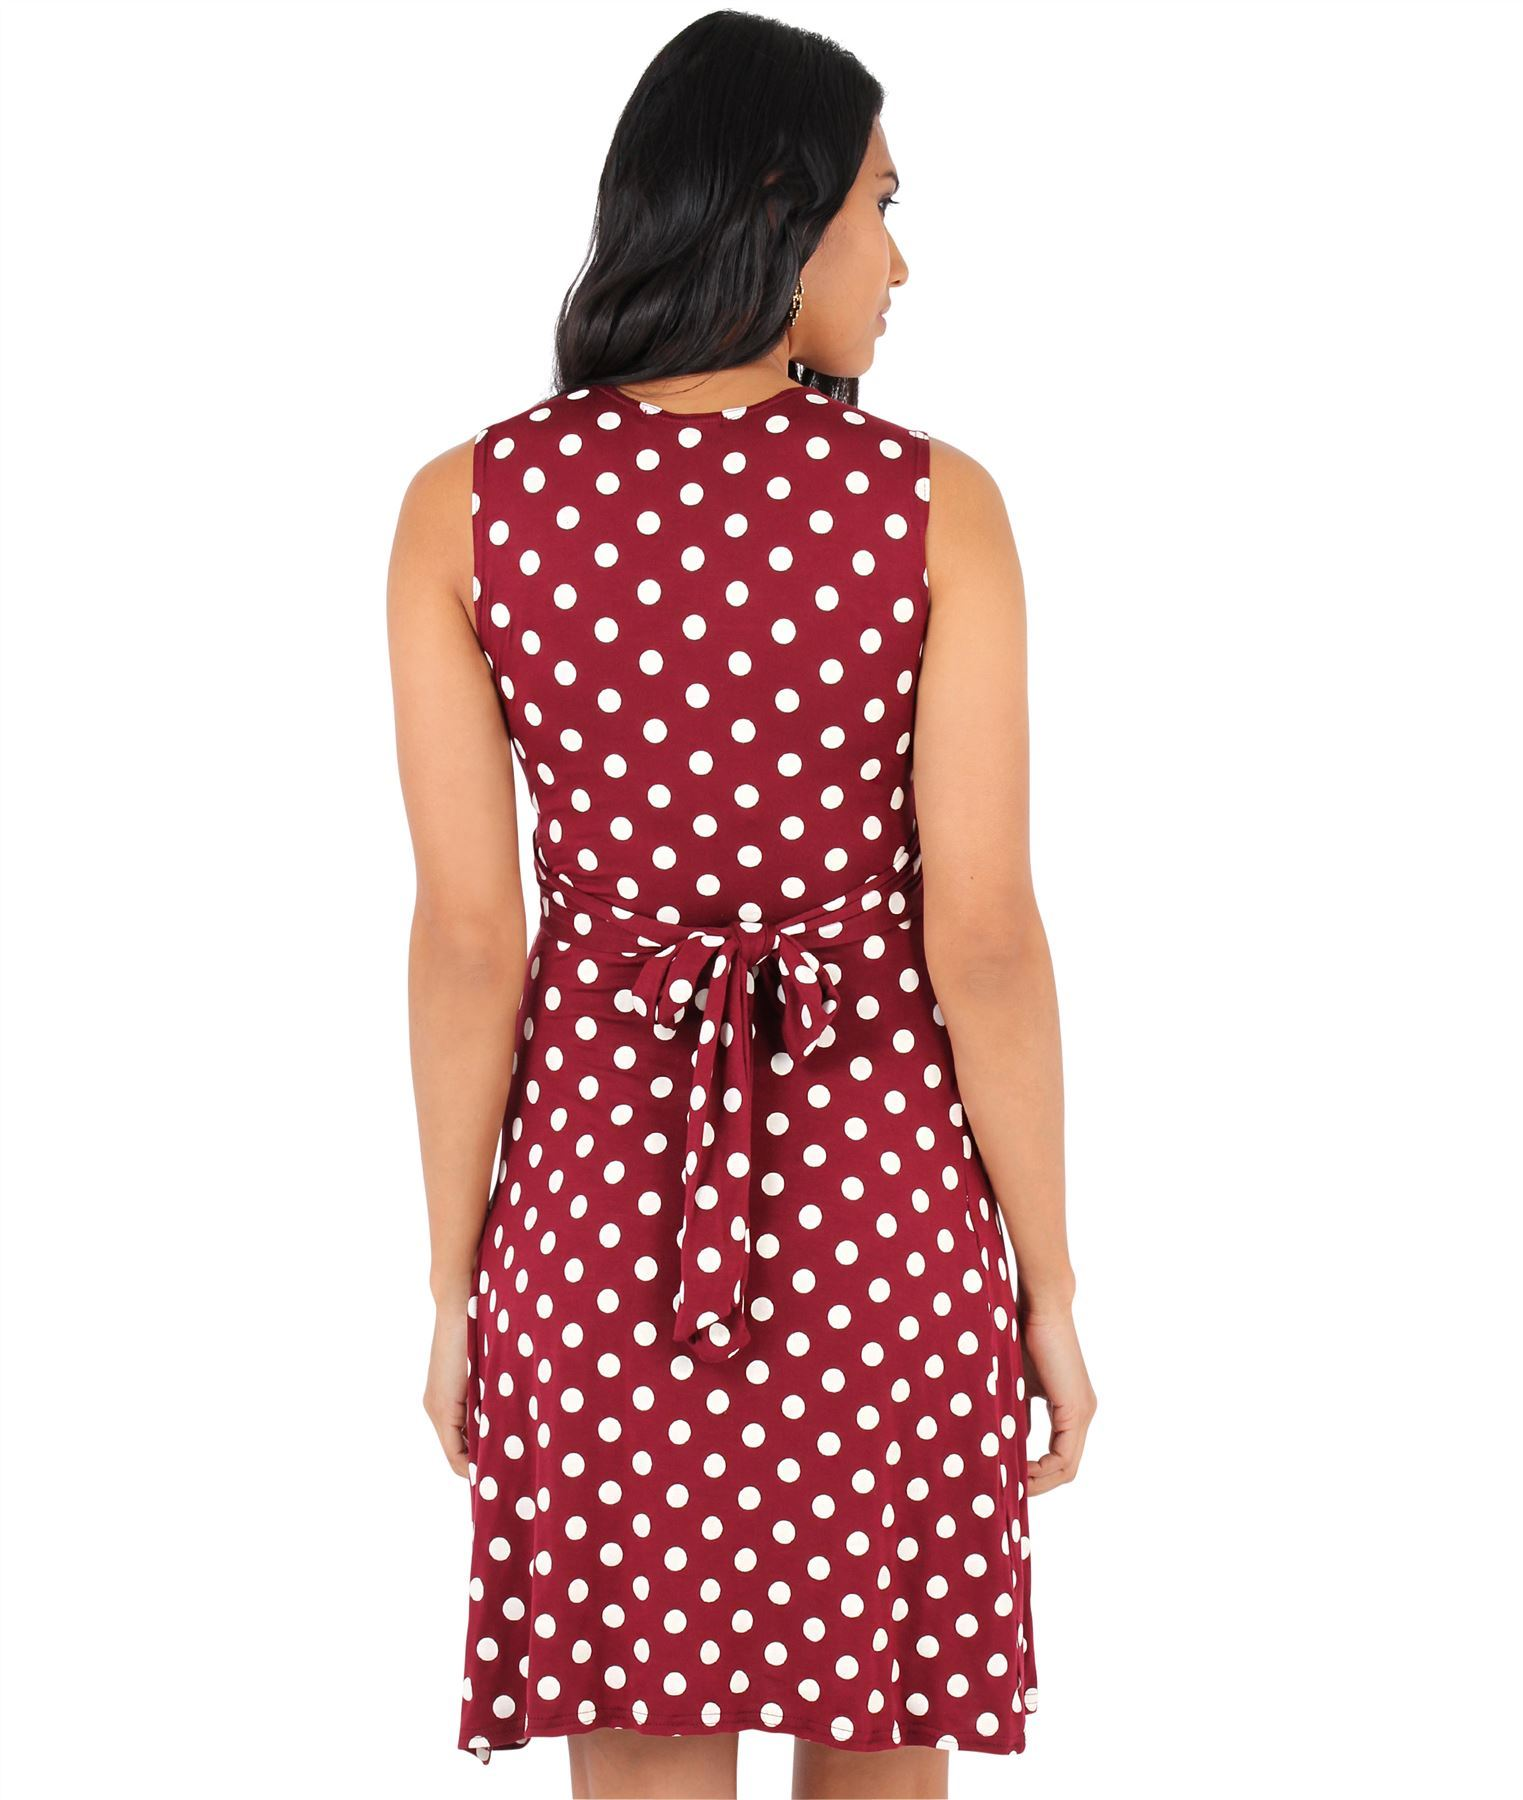 Womens-Polka-Dot-Retro-Dress-Pleated-Skirt-Wrap-Mini-V-Neck-Top-Swing-Party thumbnail 40